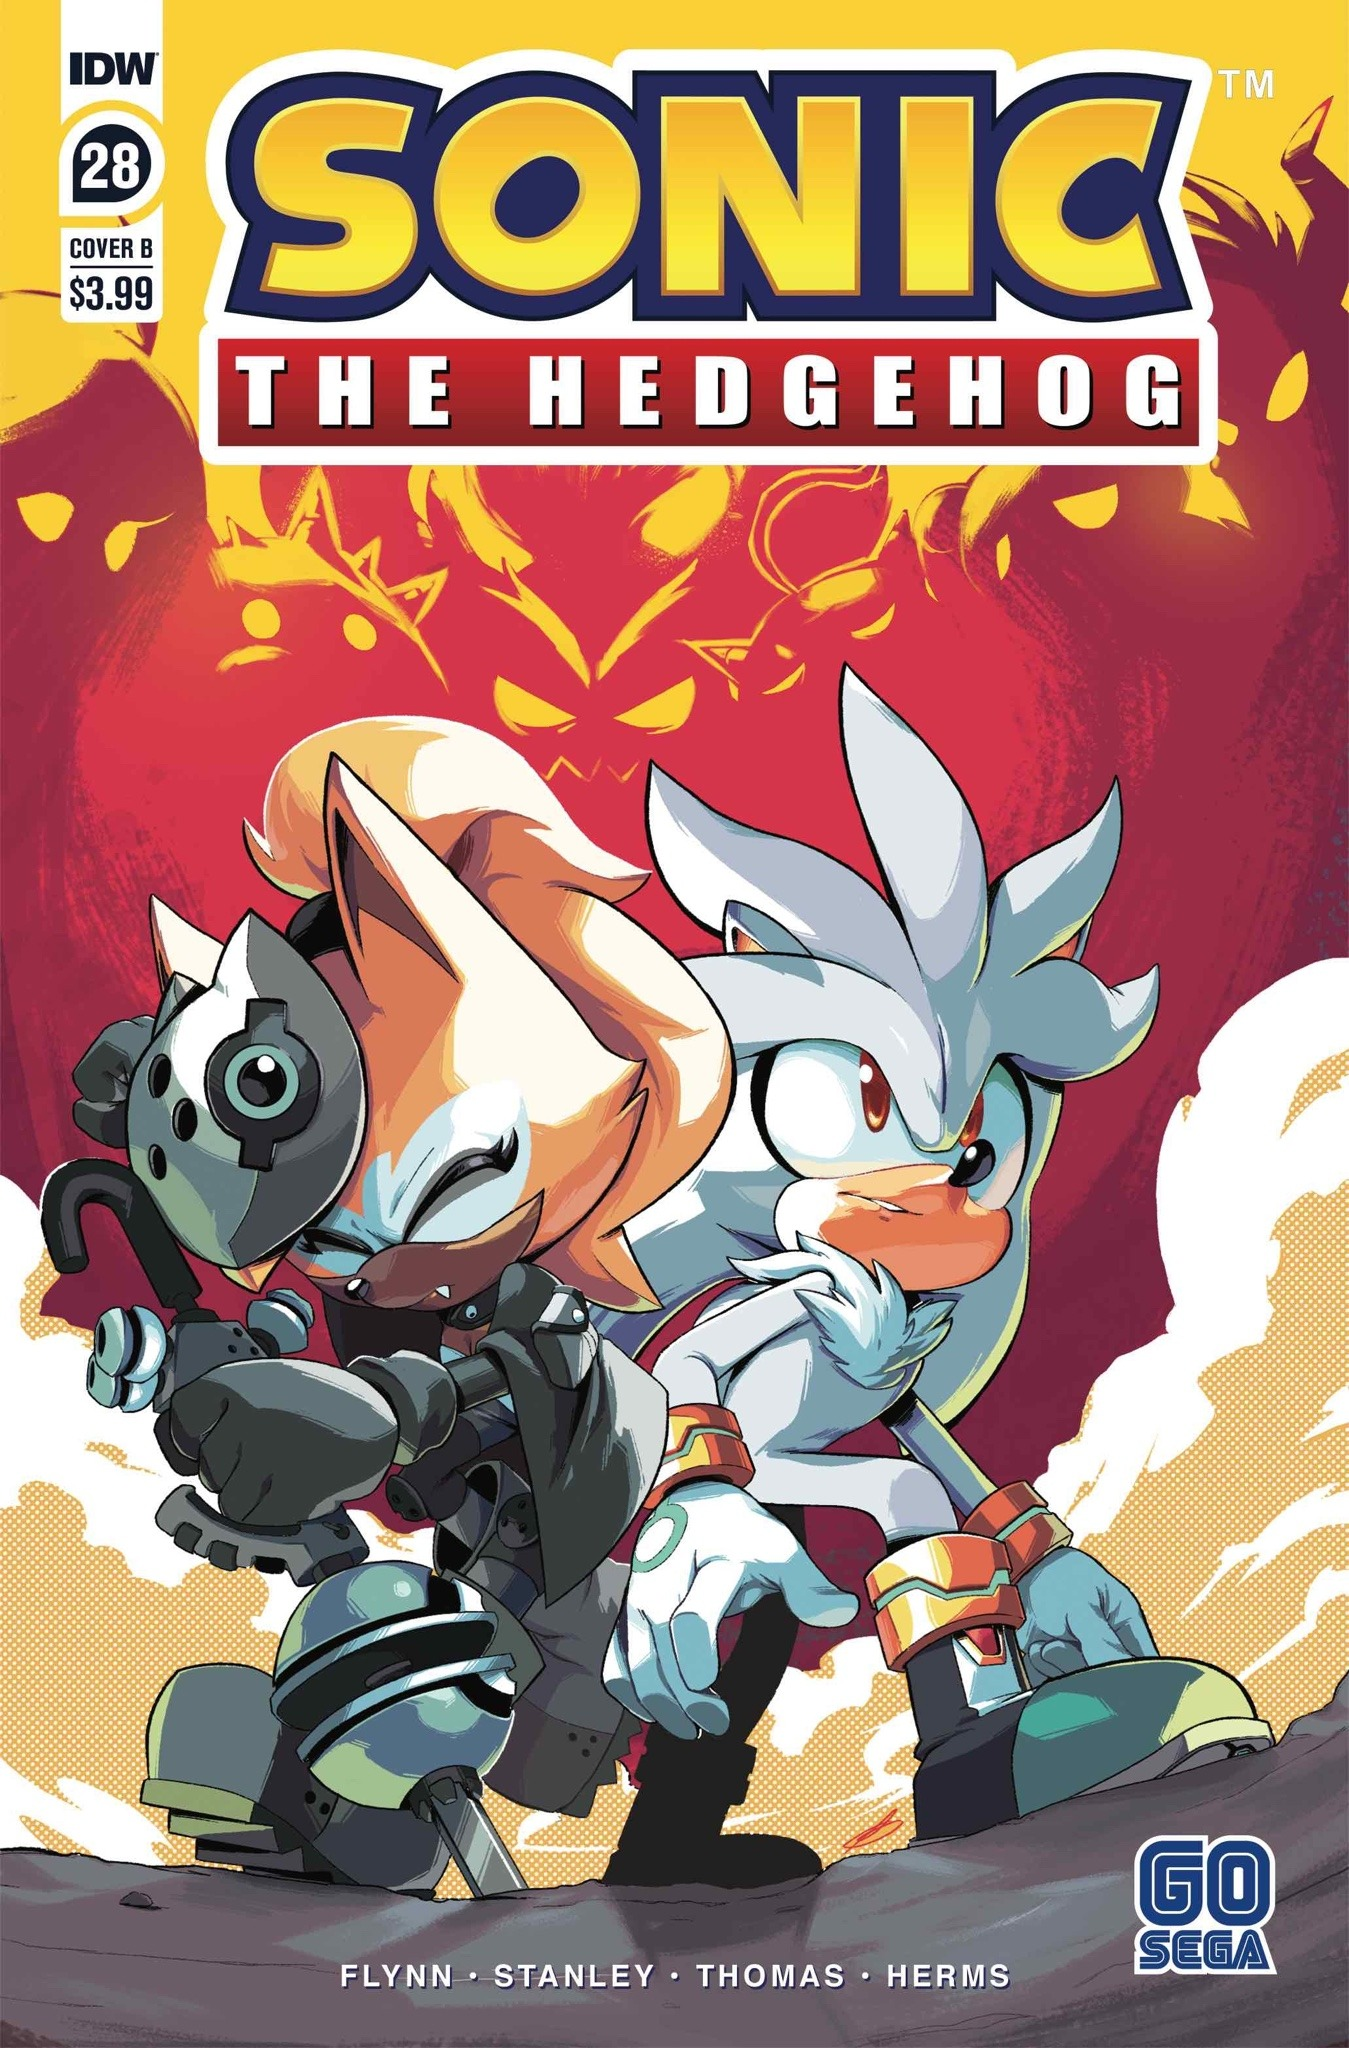 Sonic The Hedgehog Idw Art Id 130984 Art Abyss